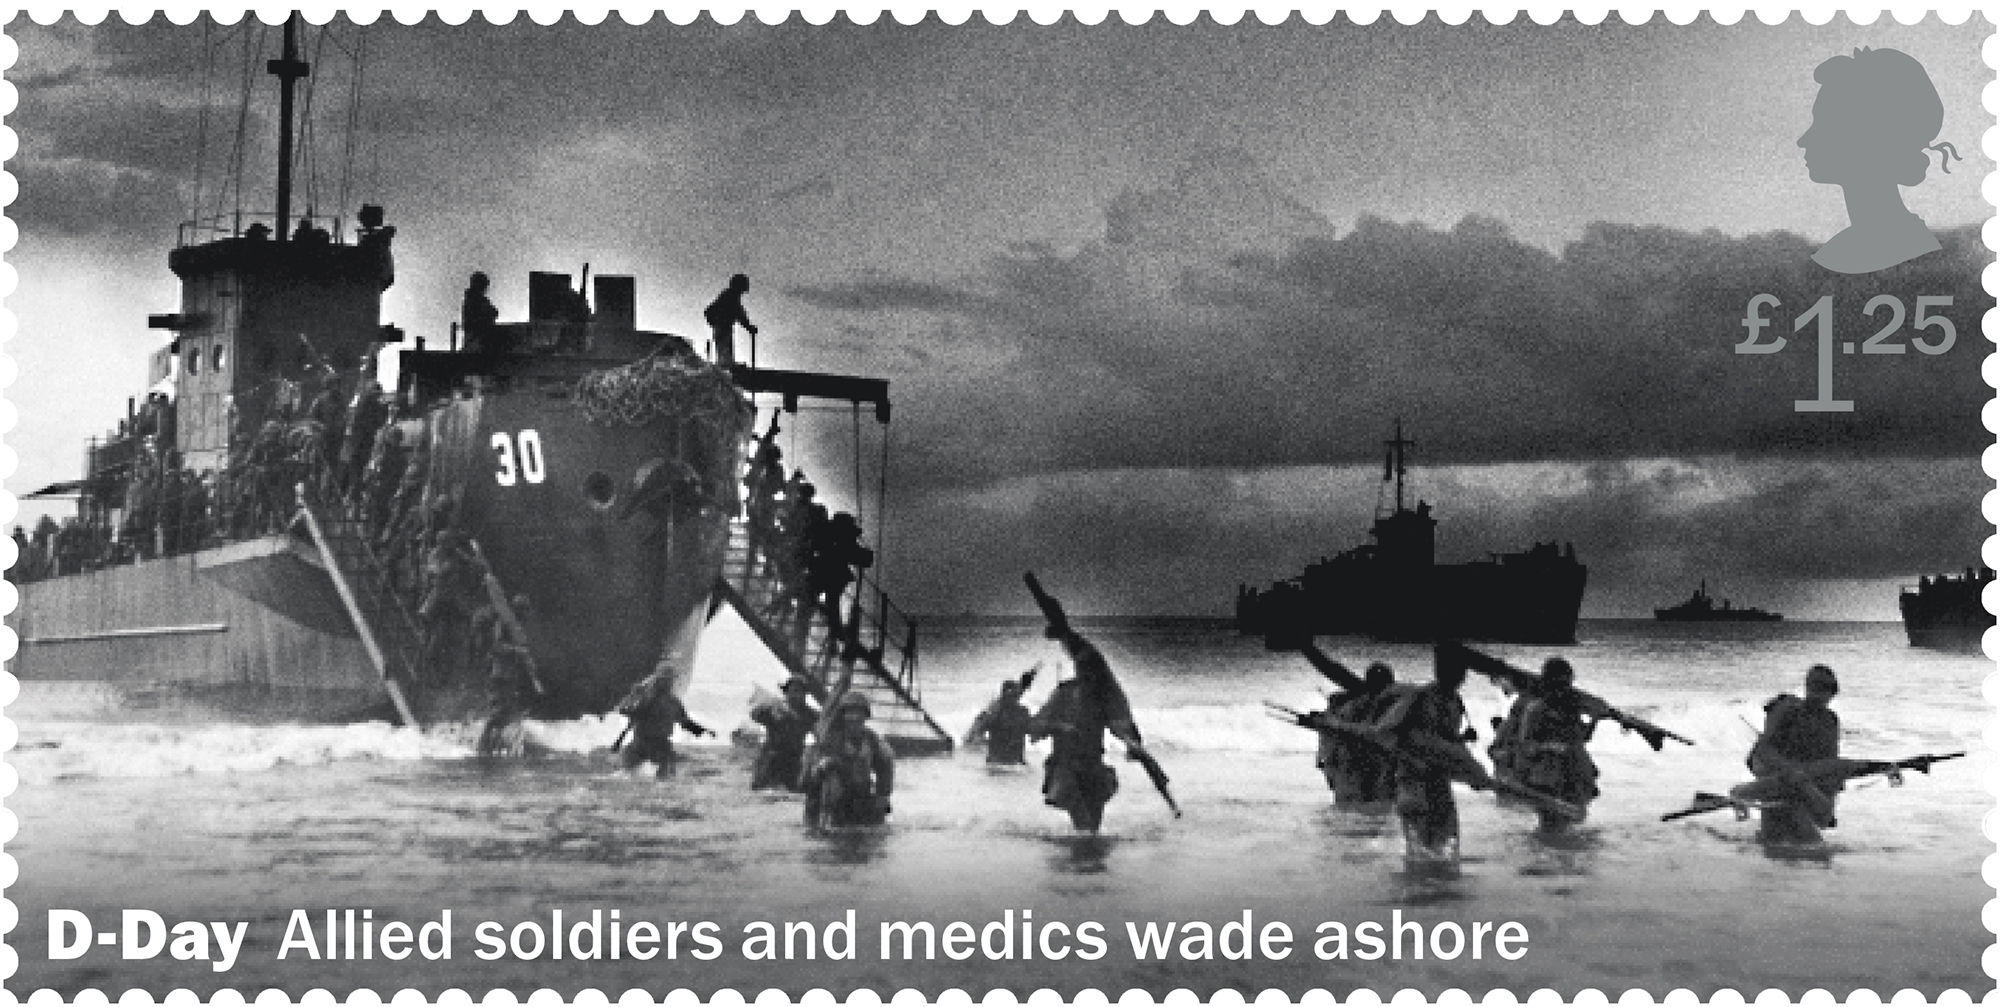 APOLOGY Royal Mail has apologised as this stamp actually showed US troops on a beach in Asia rather than the D Day landings